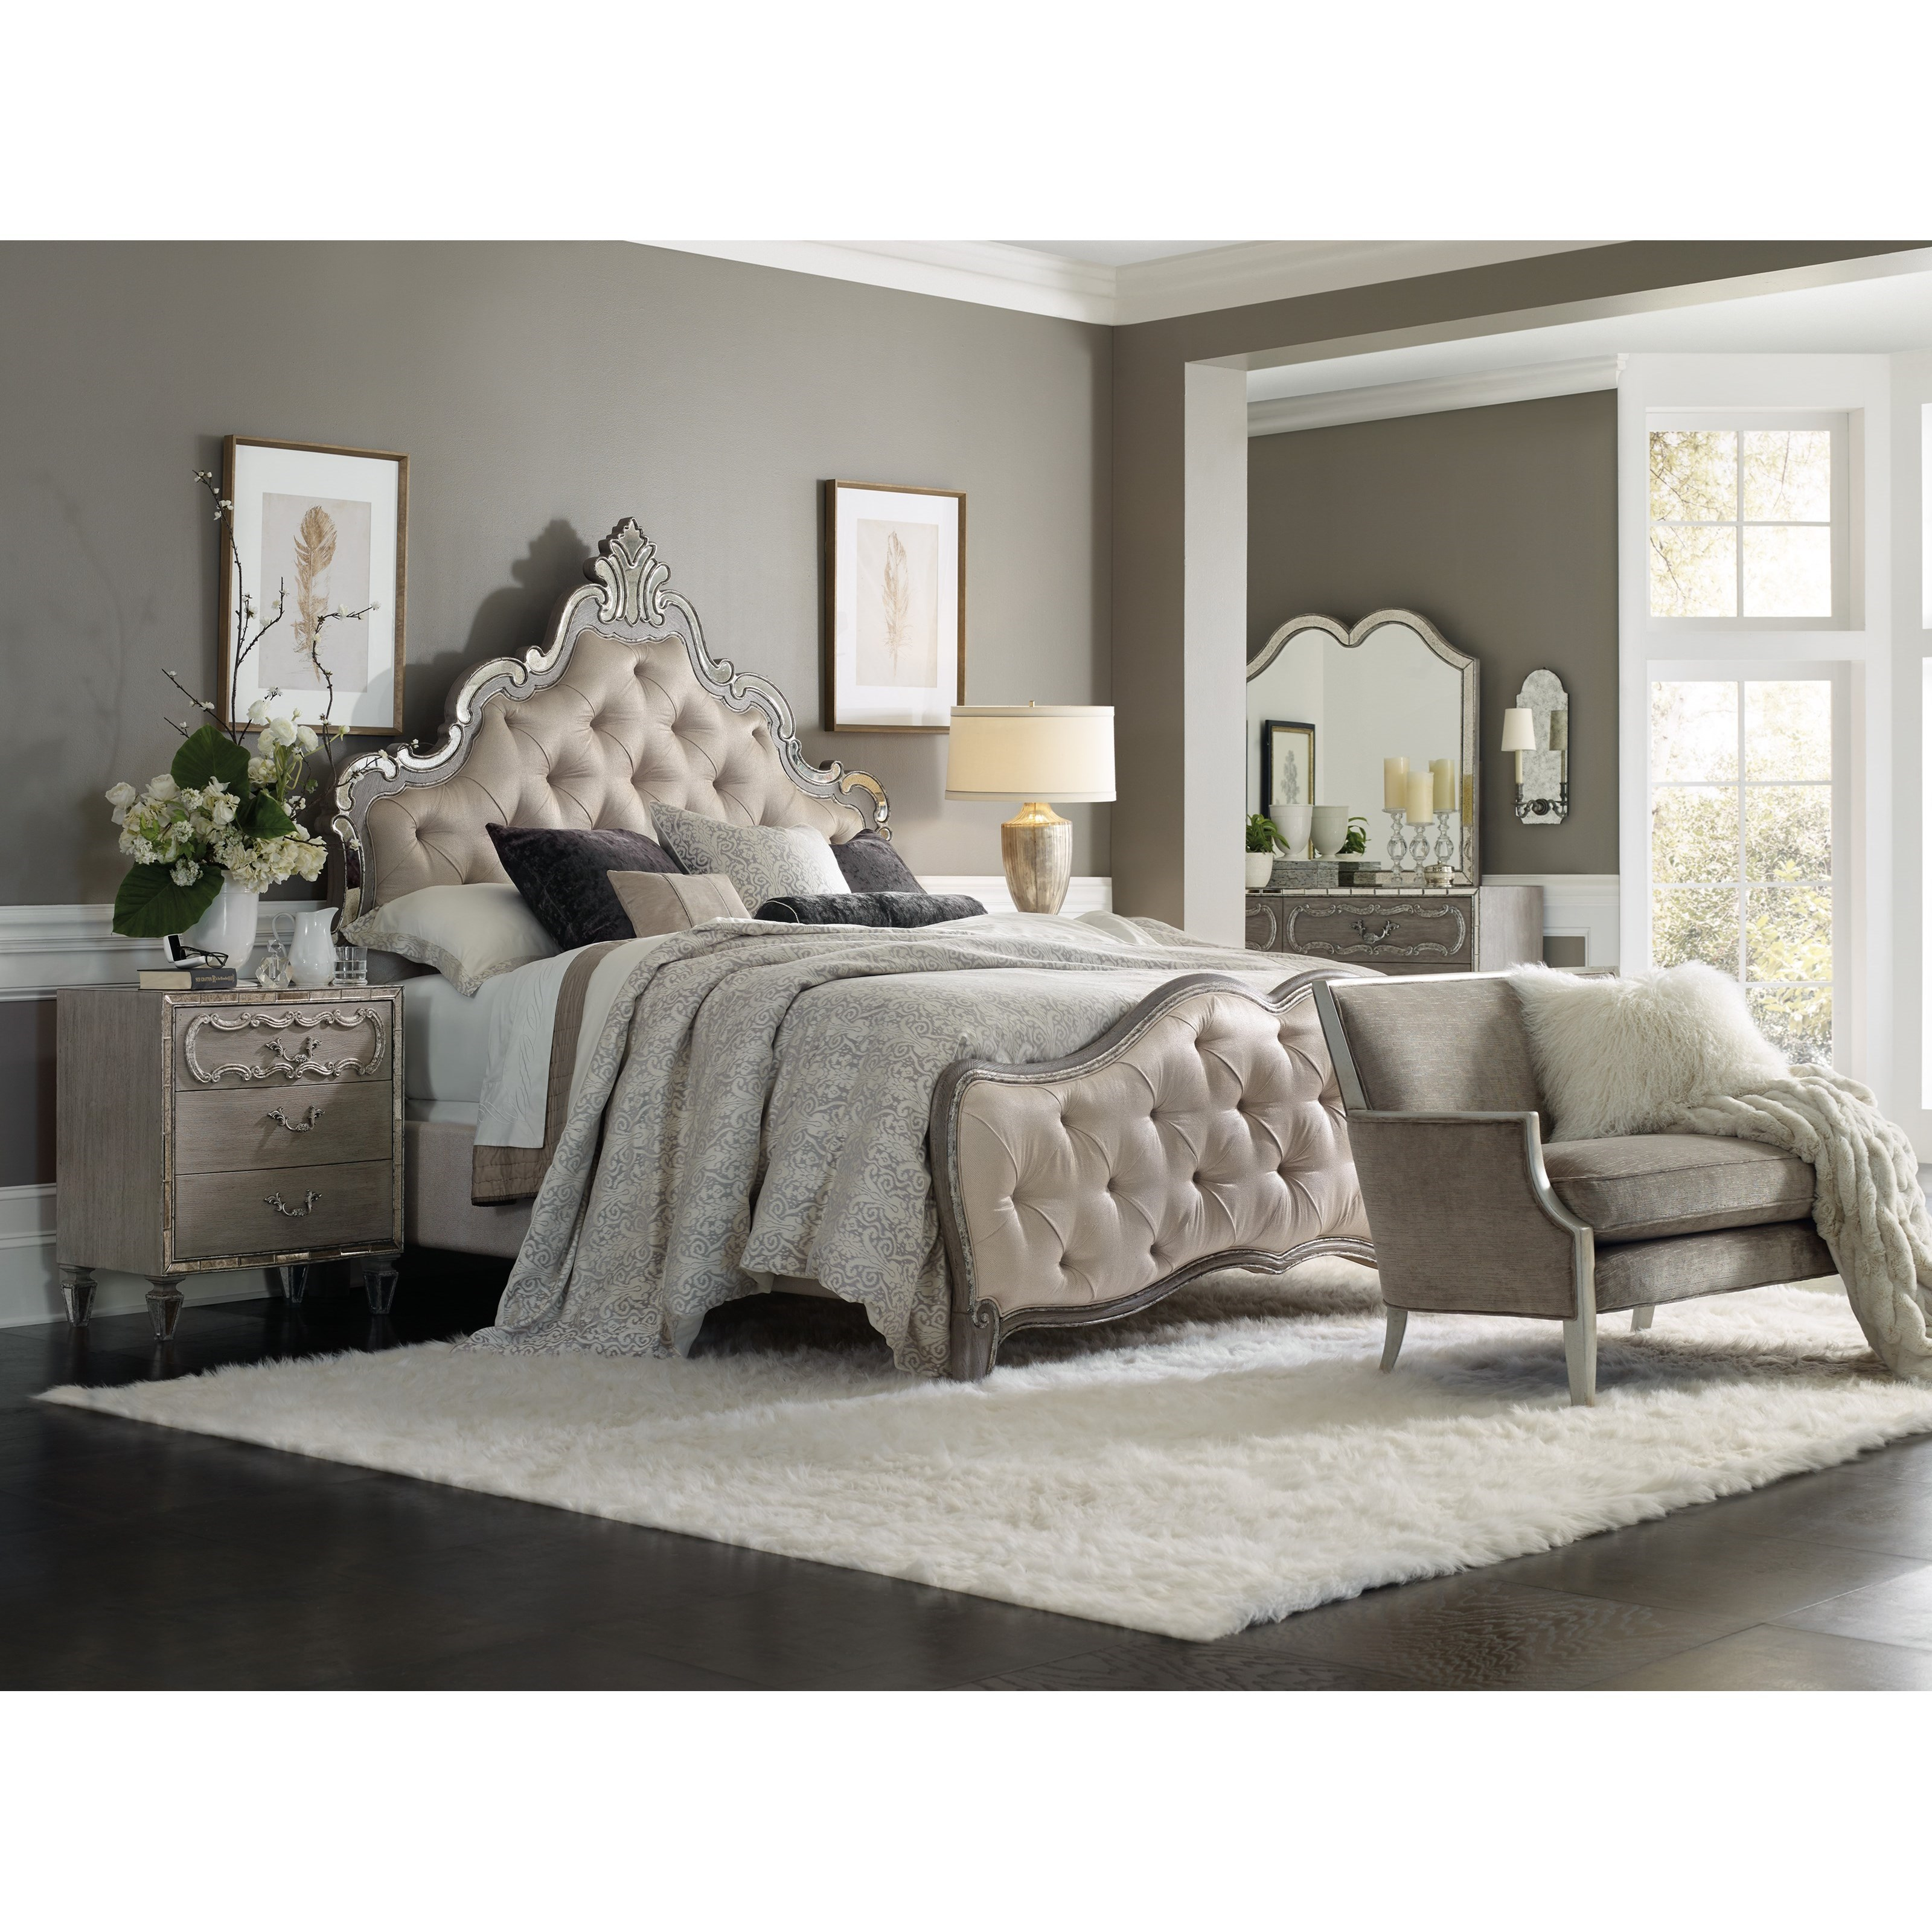 Sanctuary California King Bedroom Group by Hooker Furniture at Zak's Home